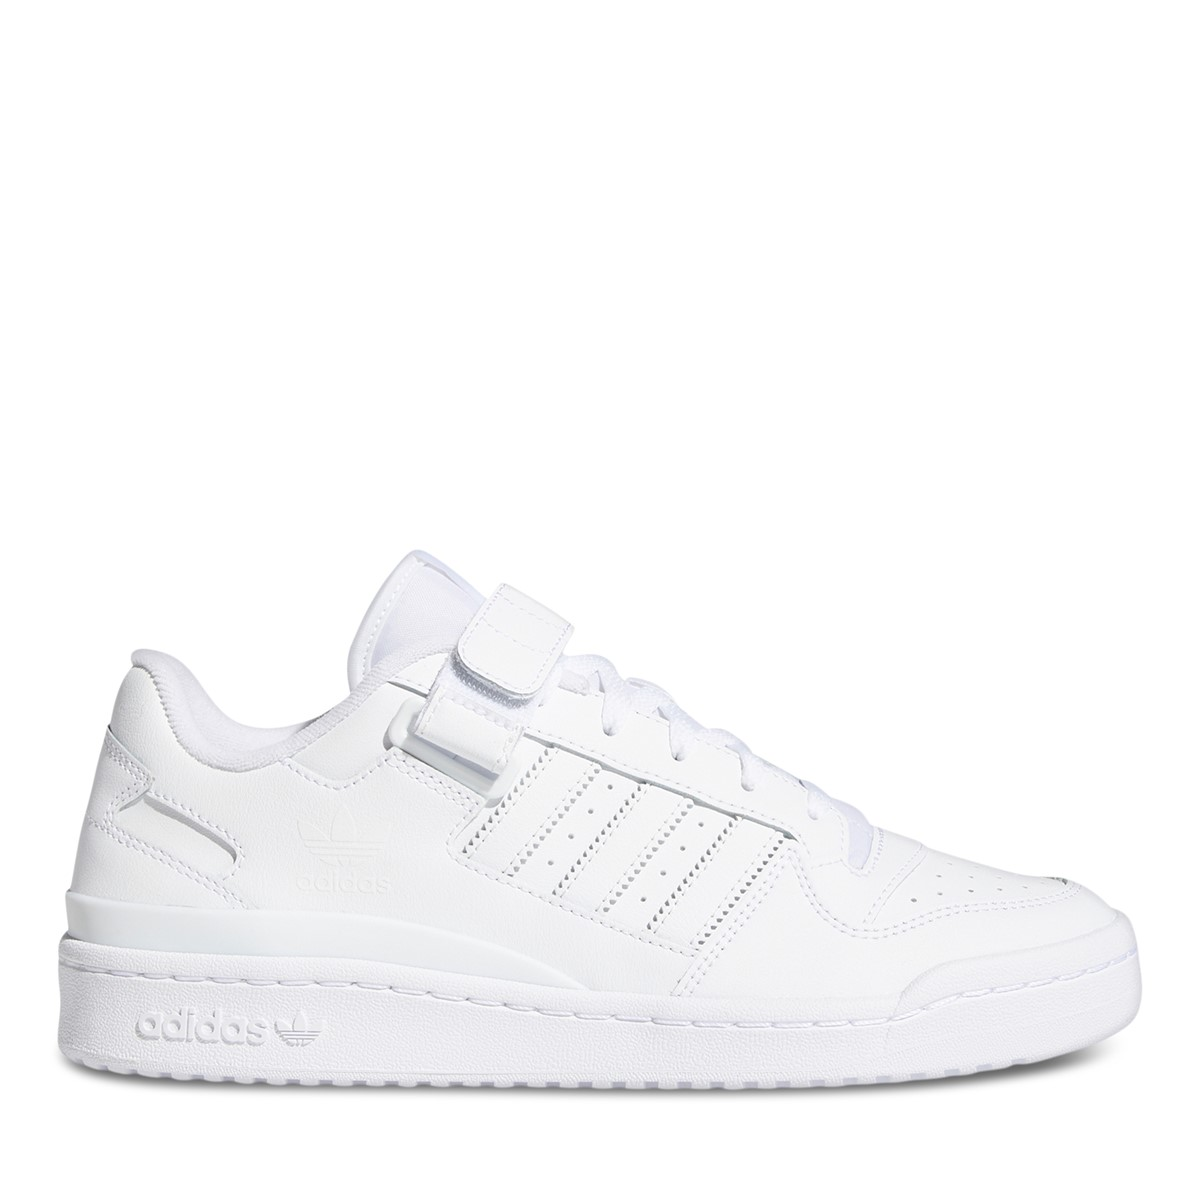 Forum Low Sneakers in White